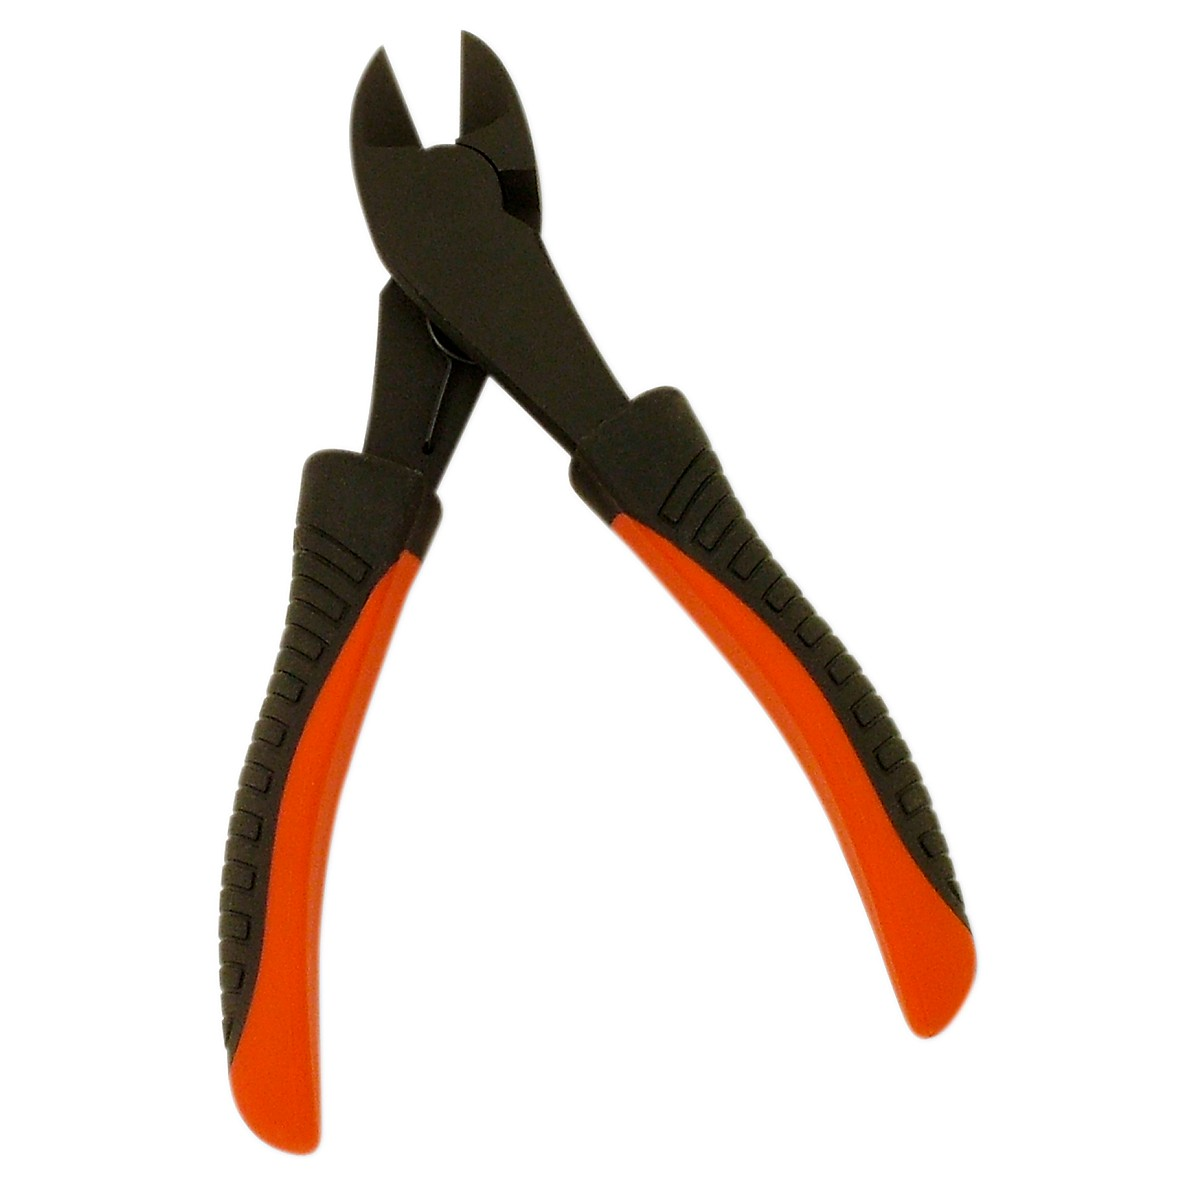 GROOVETECH TOOLS, INC. GrooveTech Guitar/Bass String Cutters